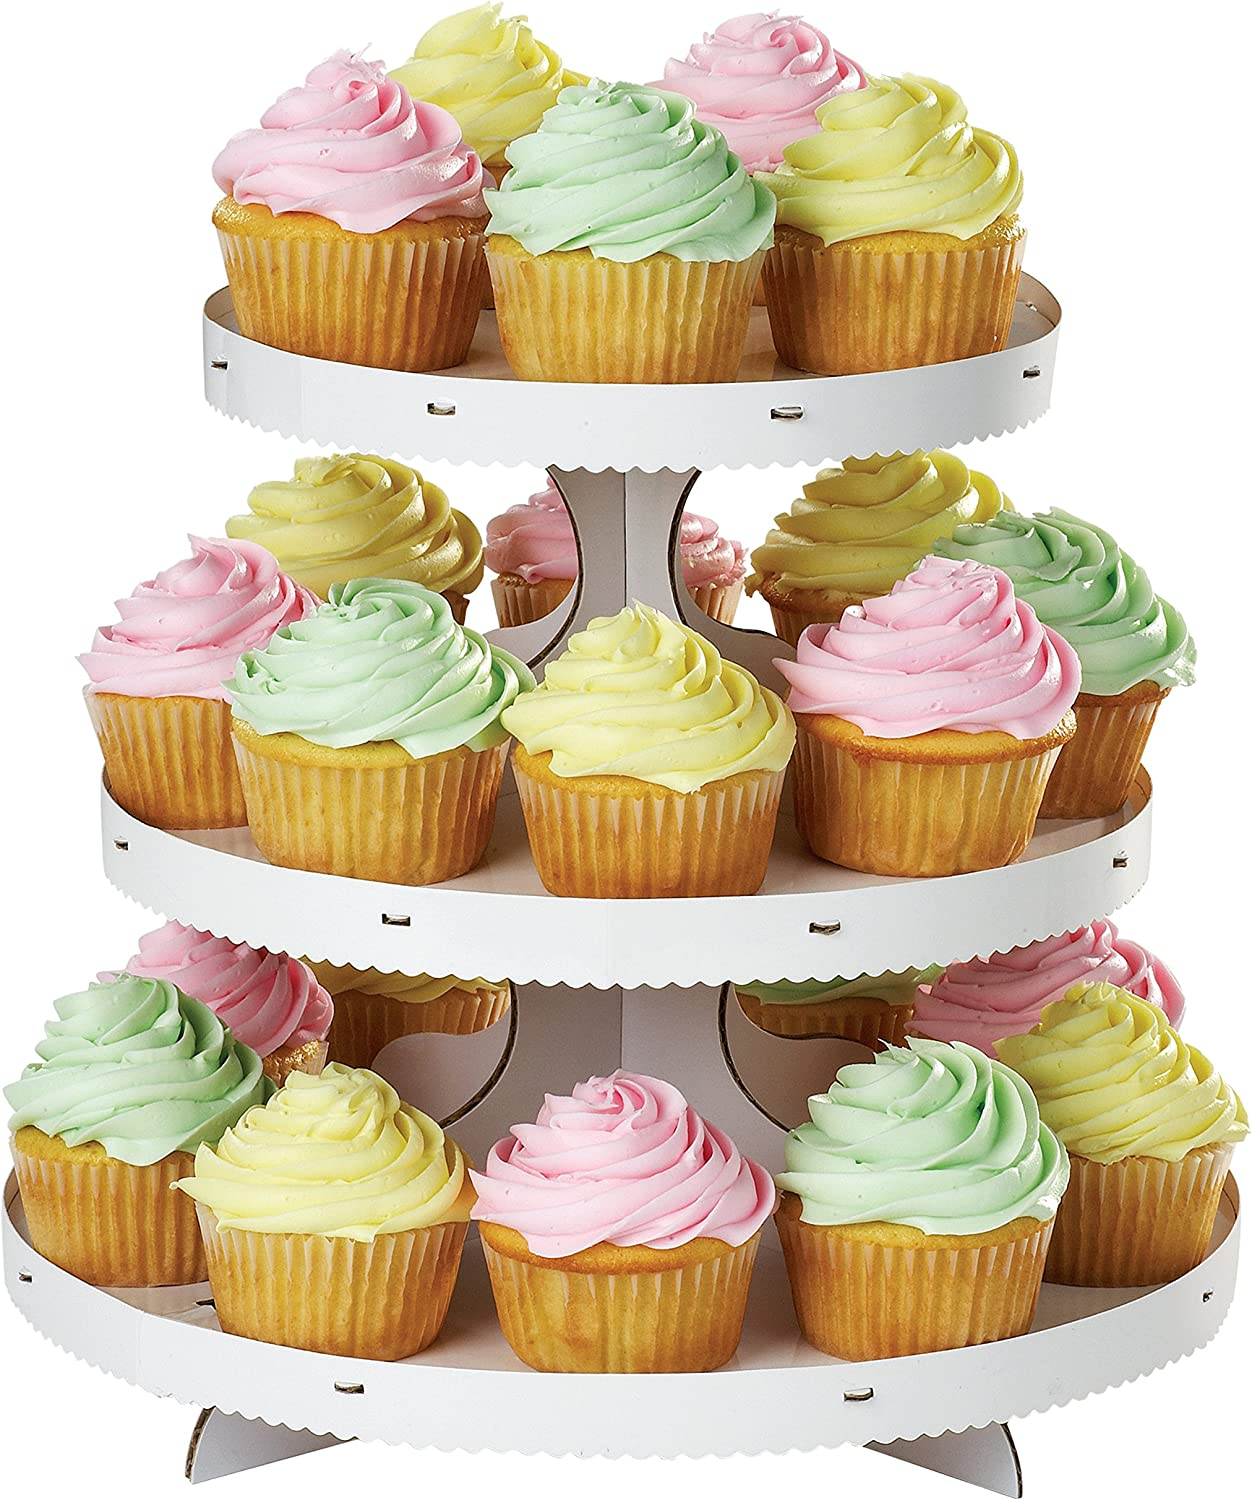 """12 Cupcake Toppers Anniversaire Tranches Crâne 7.5/"""" Cake Topper 1003 Givrage Feuille"""